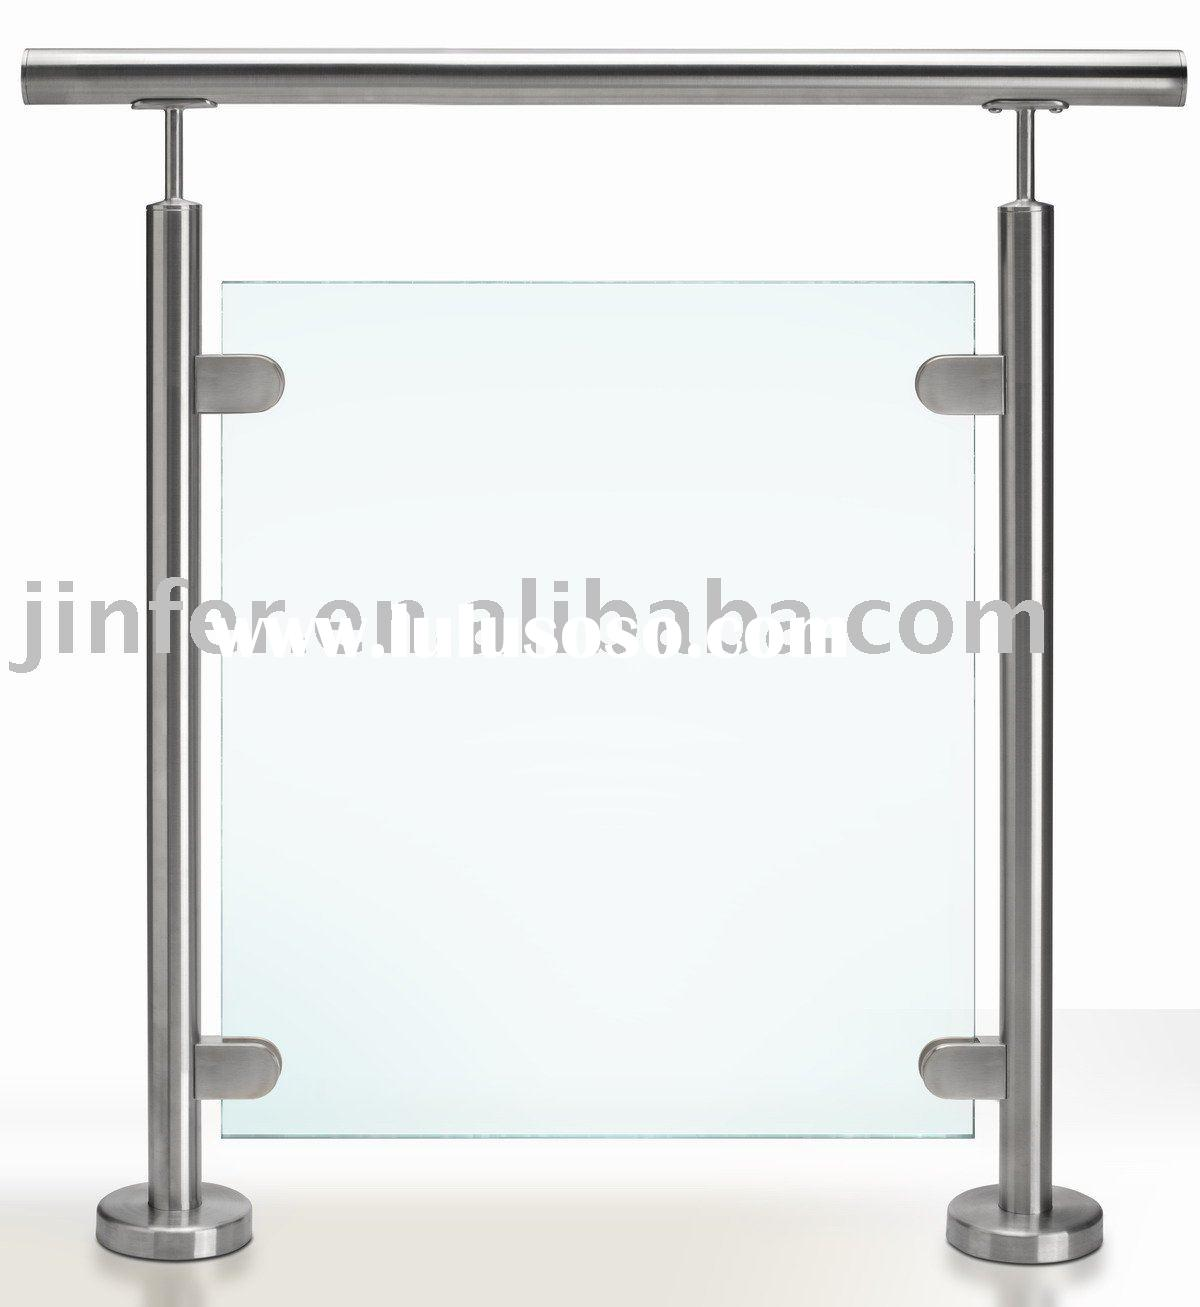 stainless steel railing with cable wire infill for sale. Black Bedroom Furniture Sets. Home Design Ideas